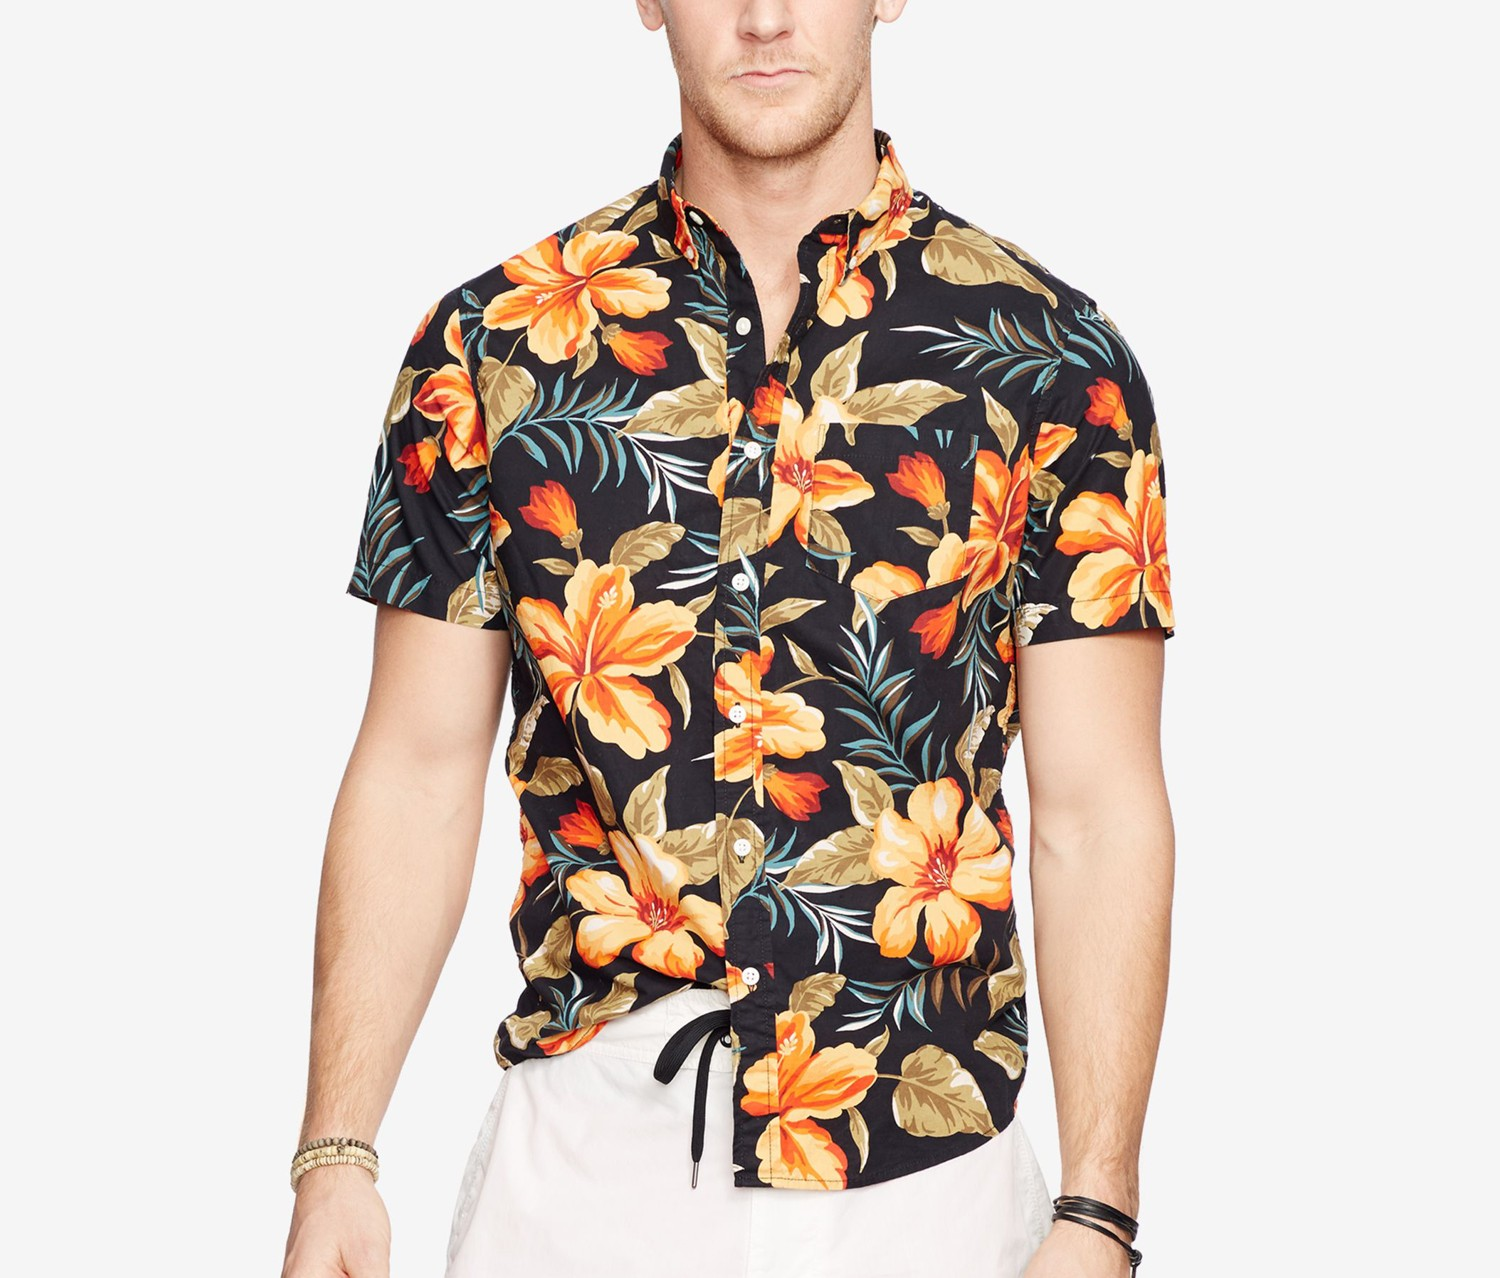 57b8367664 ... Denim   Supply Ralph Lauren Floral-Print Poplin Sport Shirt. Fashion  Collection · Summer Collection · Flip Flops · Tchibo Clothing.  4 788598344001.jpg